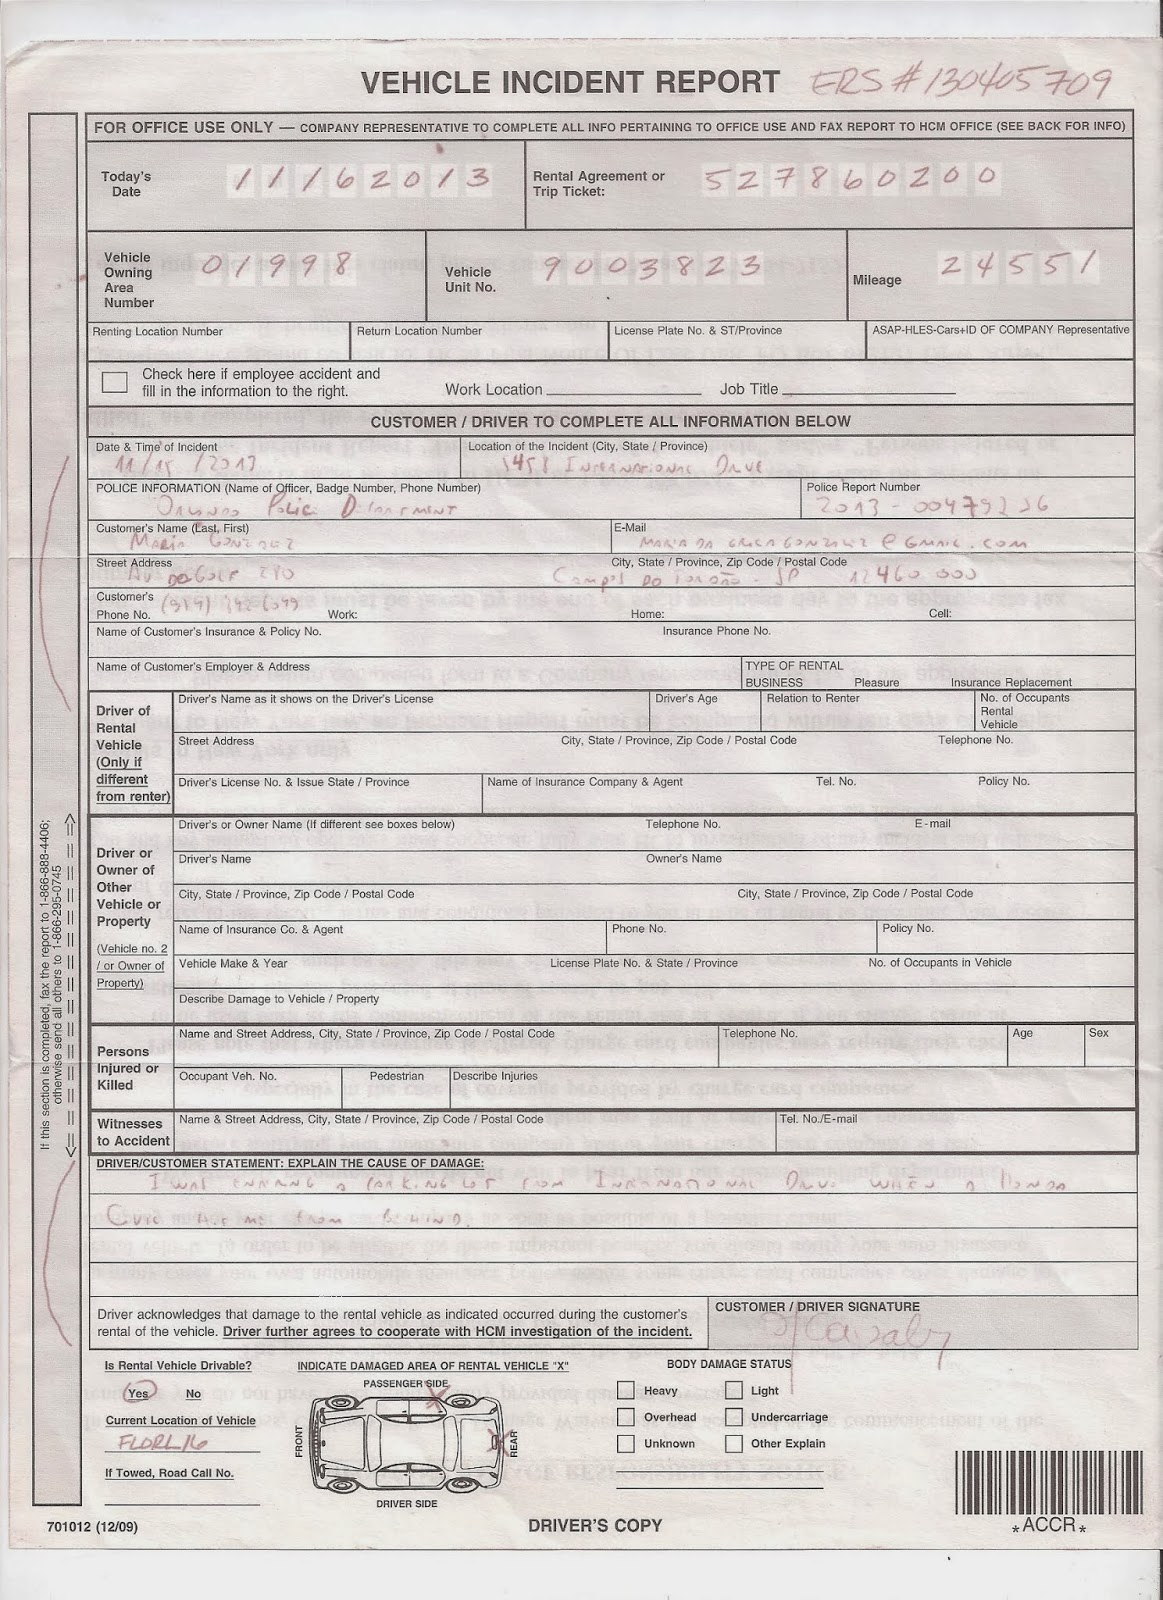 hertz vehicle incident report